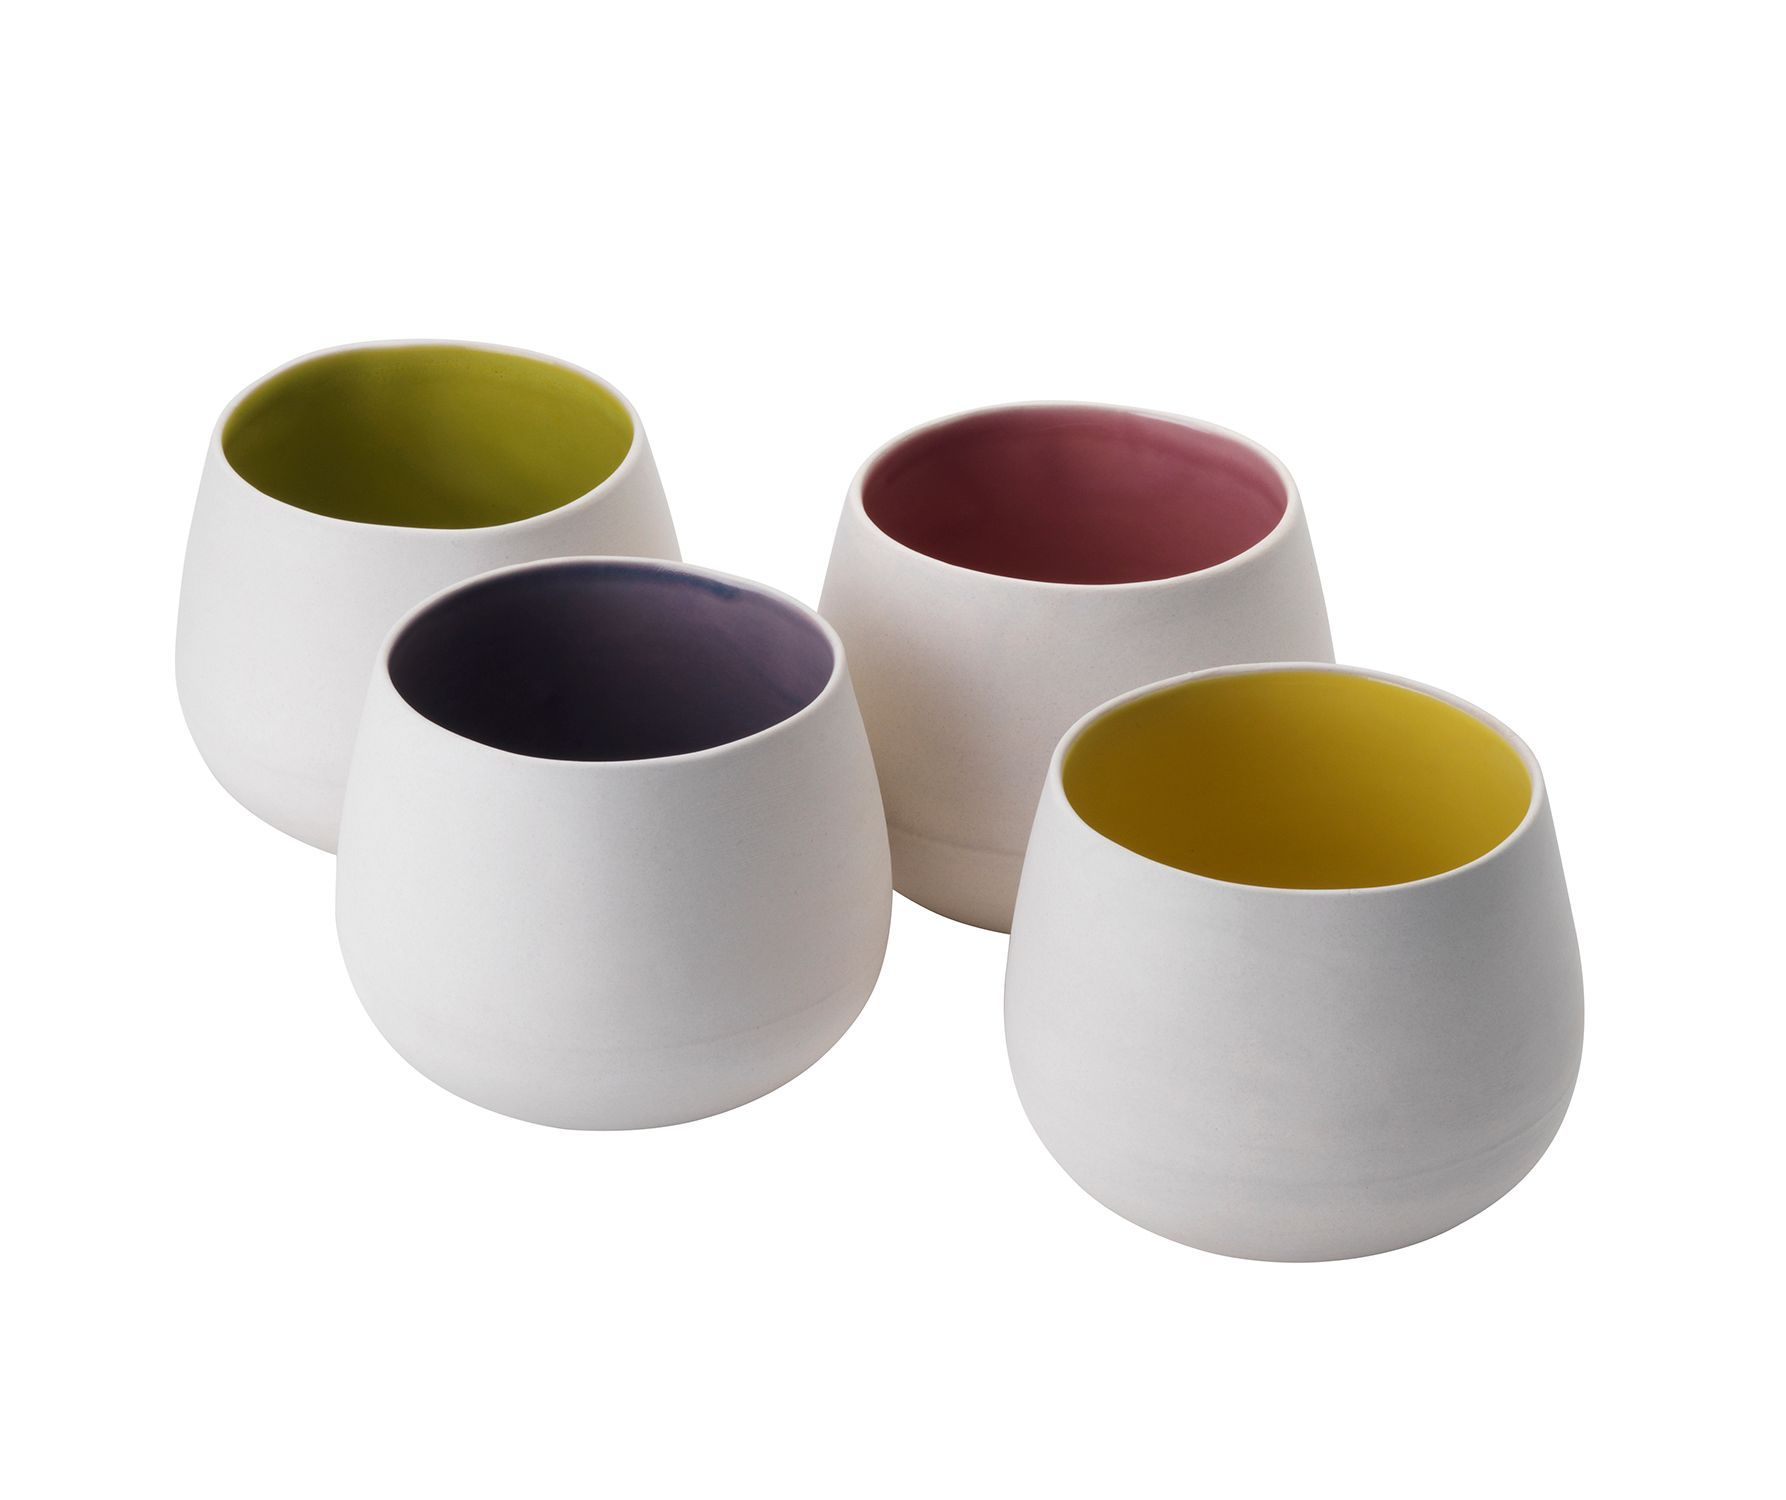 Ceramic Votives Range